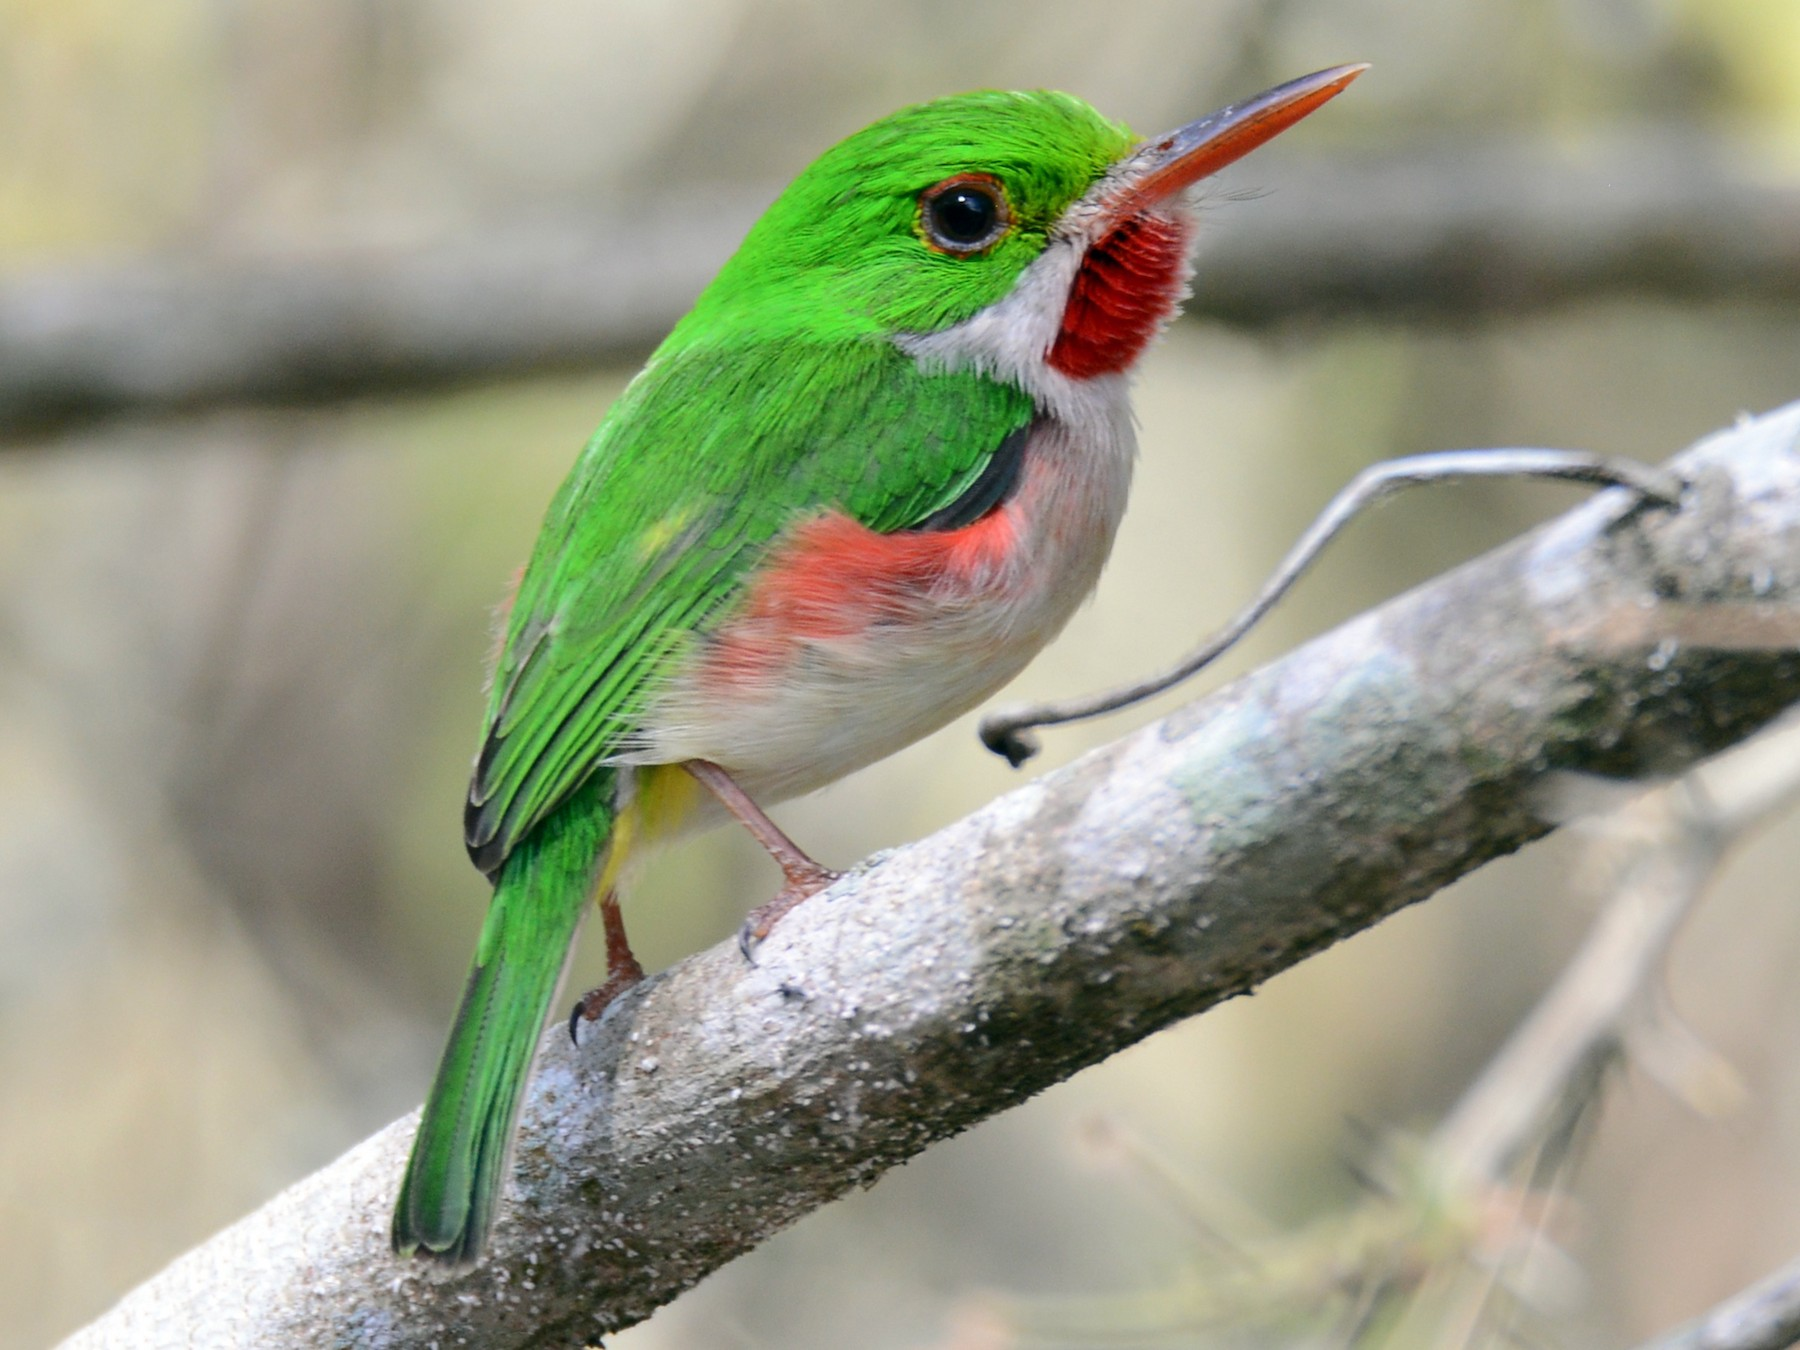 Broad-billed Tody - Alan Van Norman